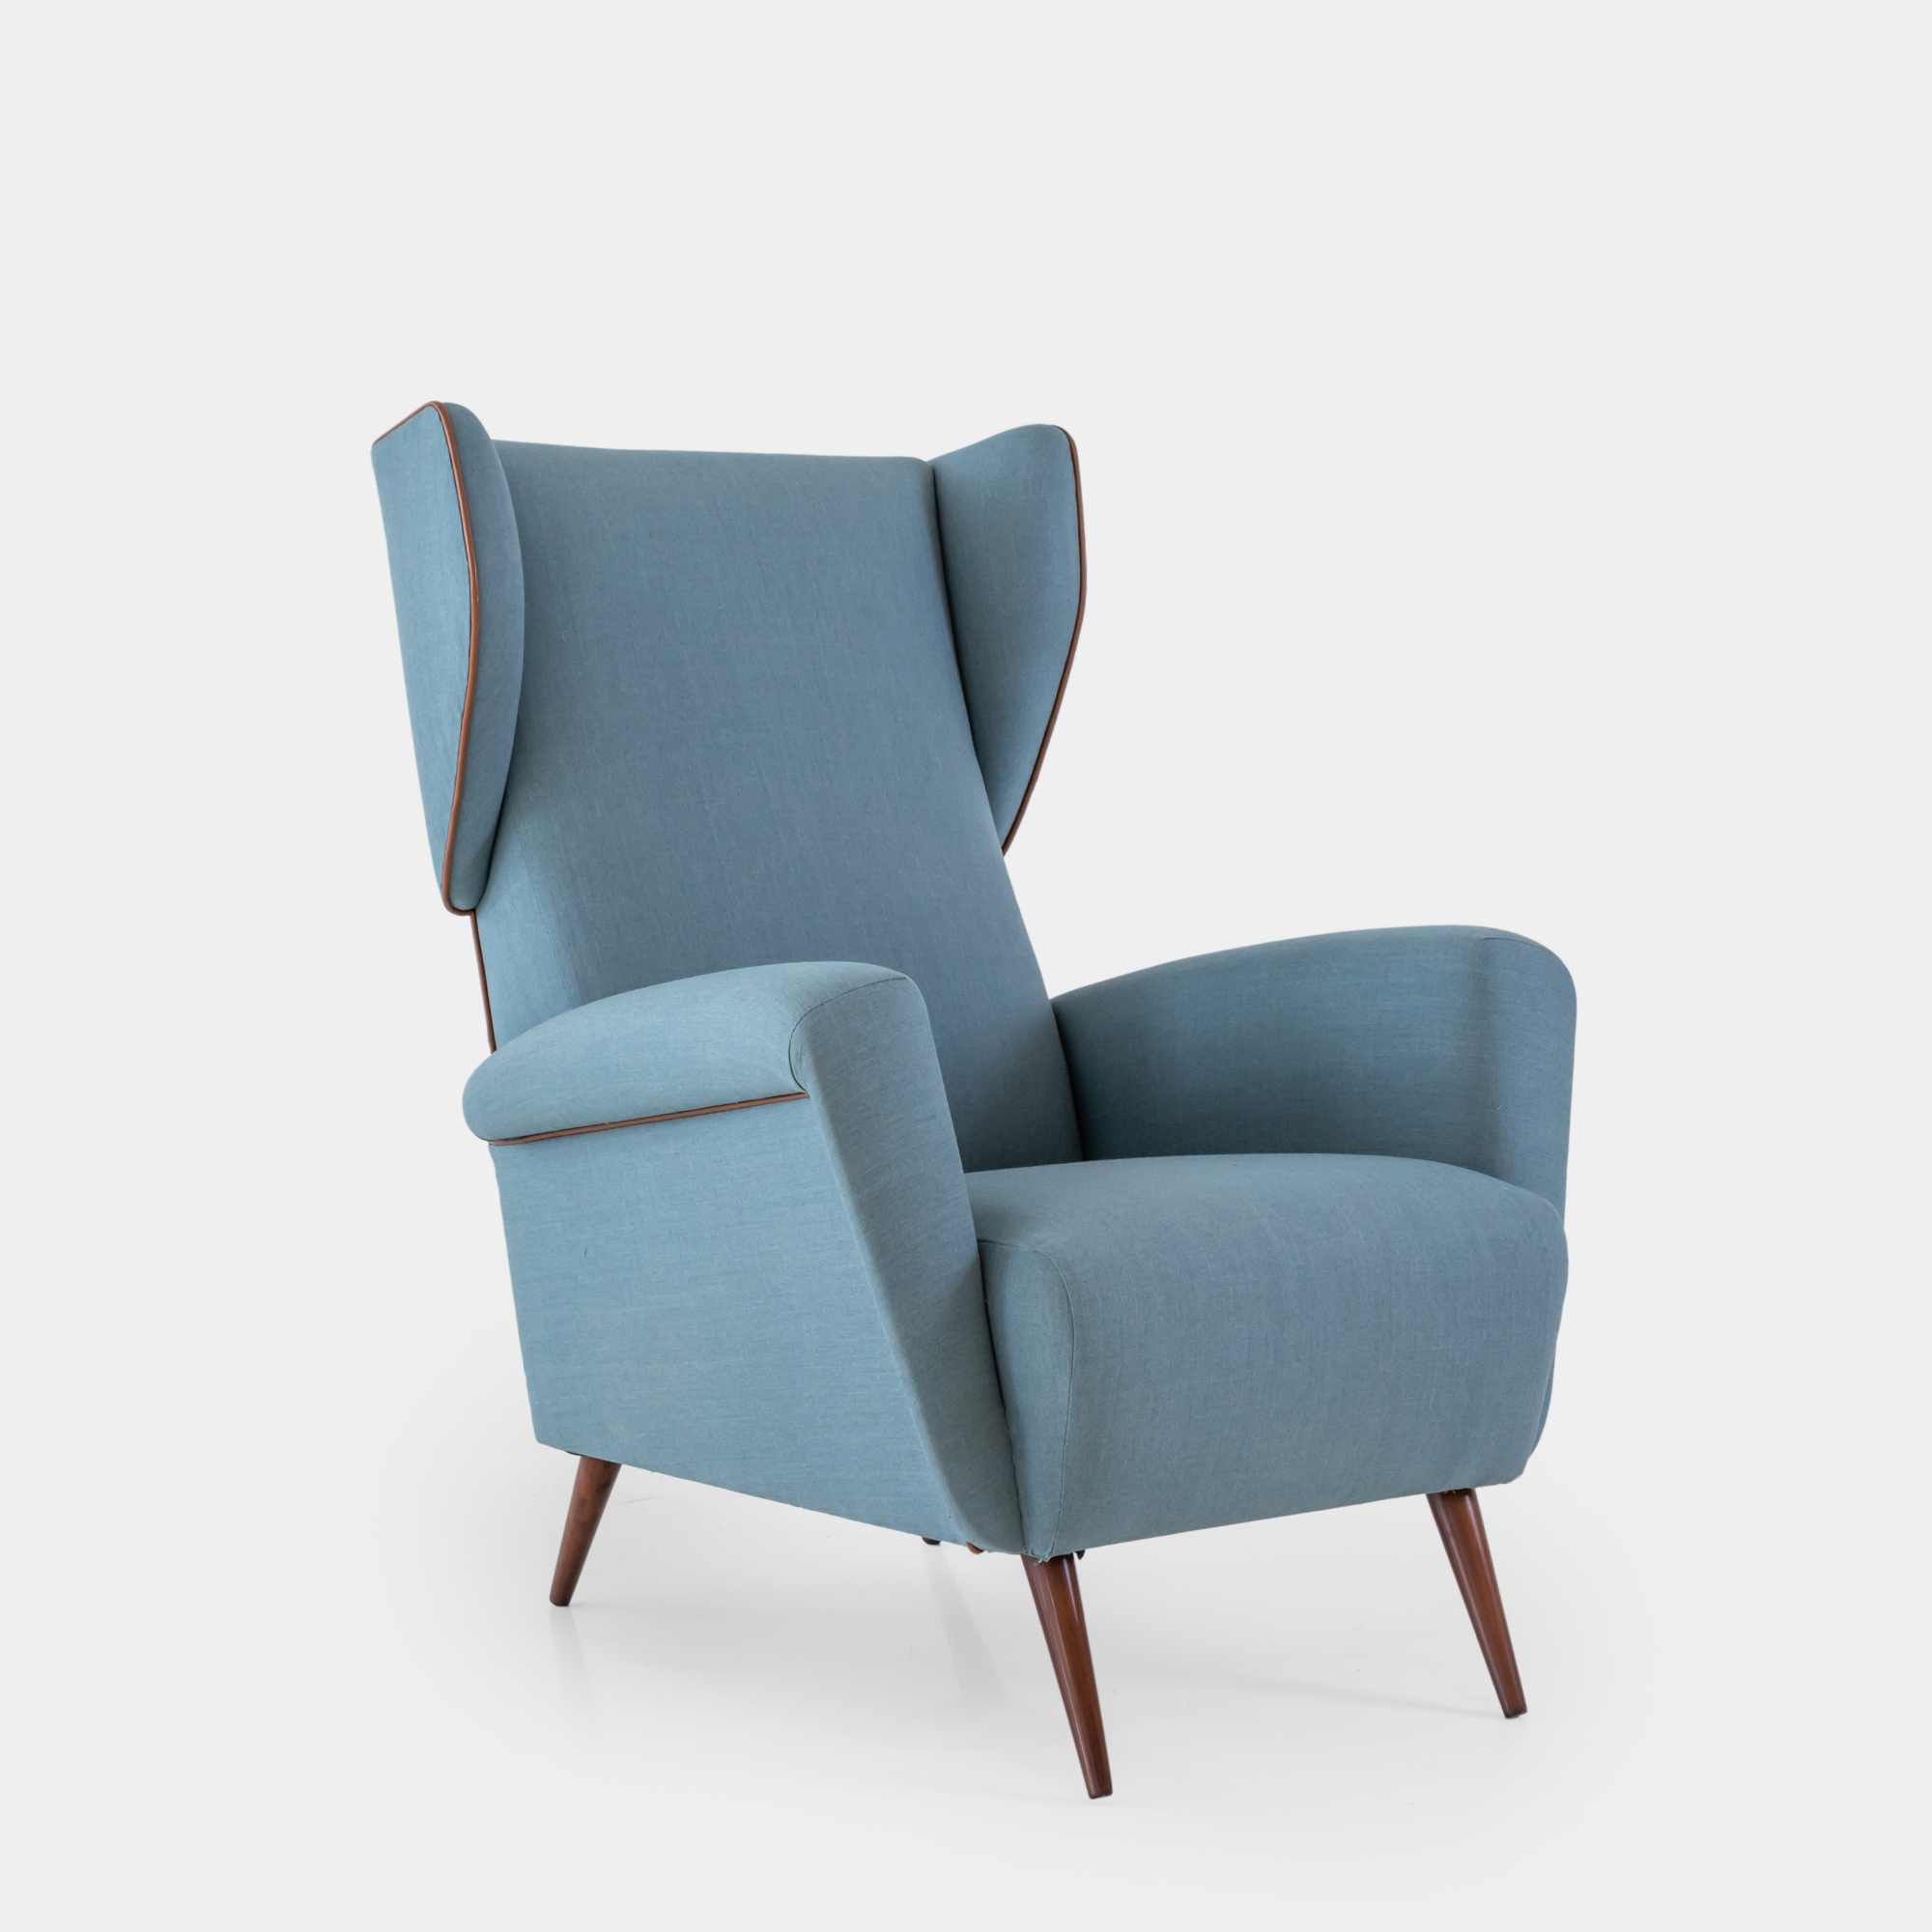 Lounge Chair in Light Blue Wool with Saddle Leather Piping by Gio Ponti for Cassina | soyun k.